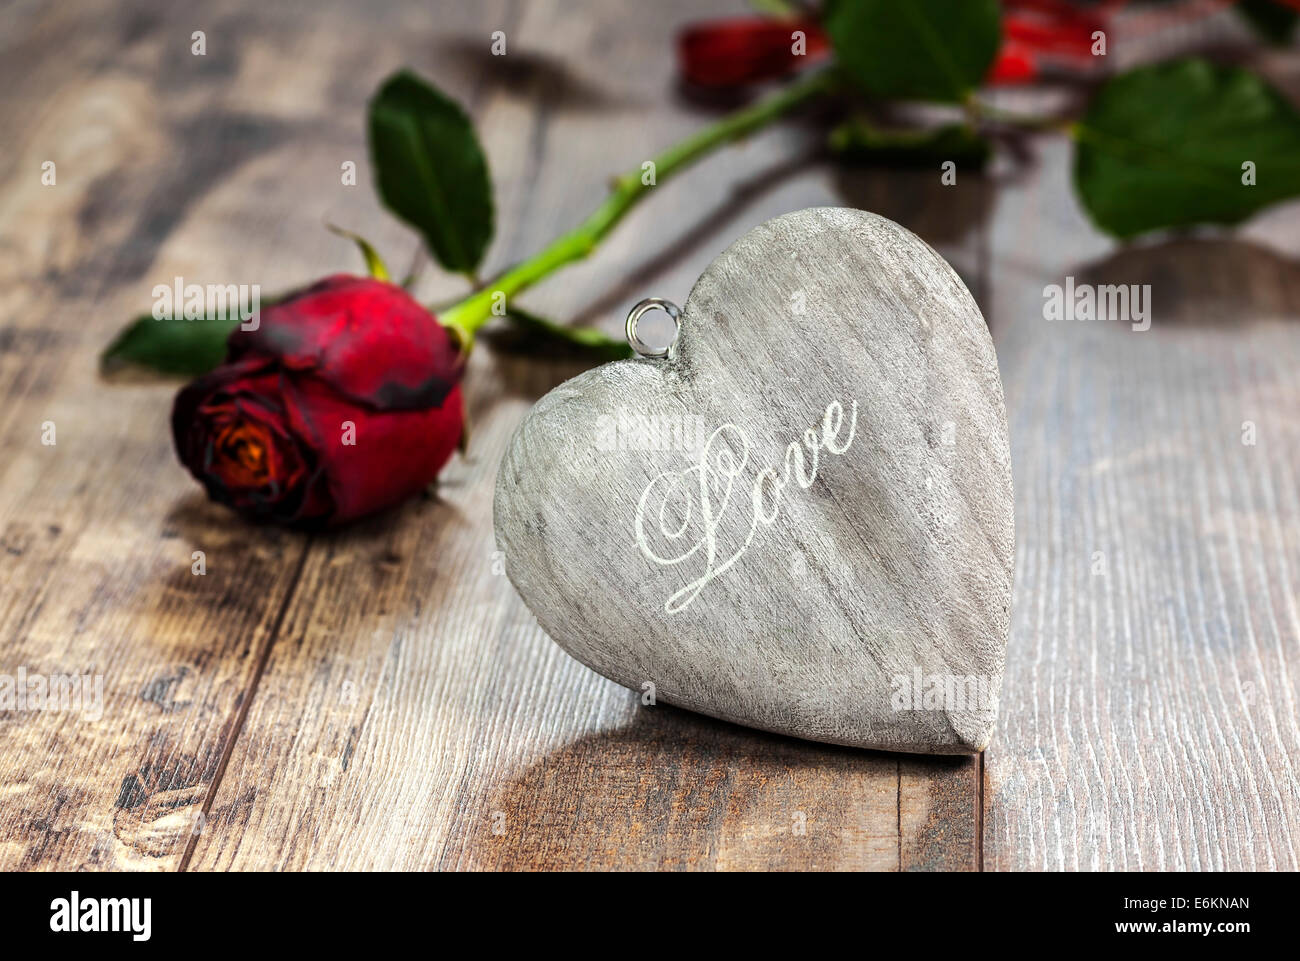 Valentine's day symbol. Heart on a wooden background with red rose. - Stock Image